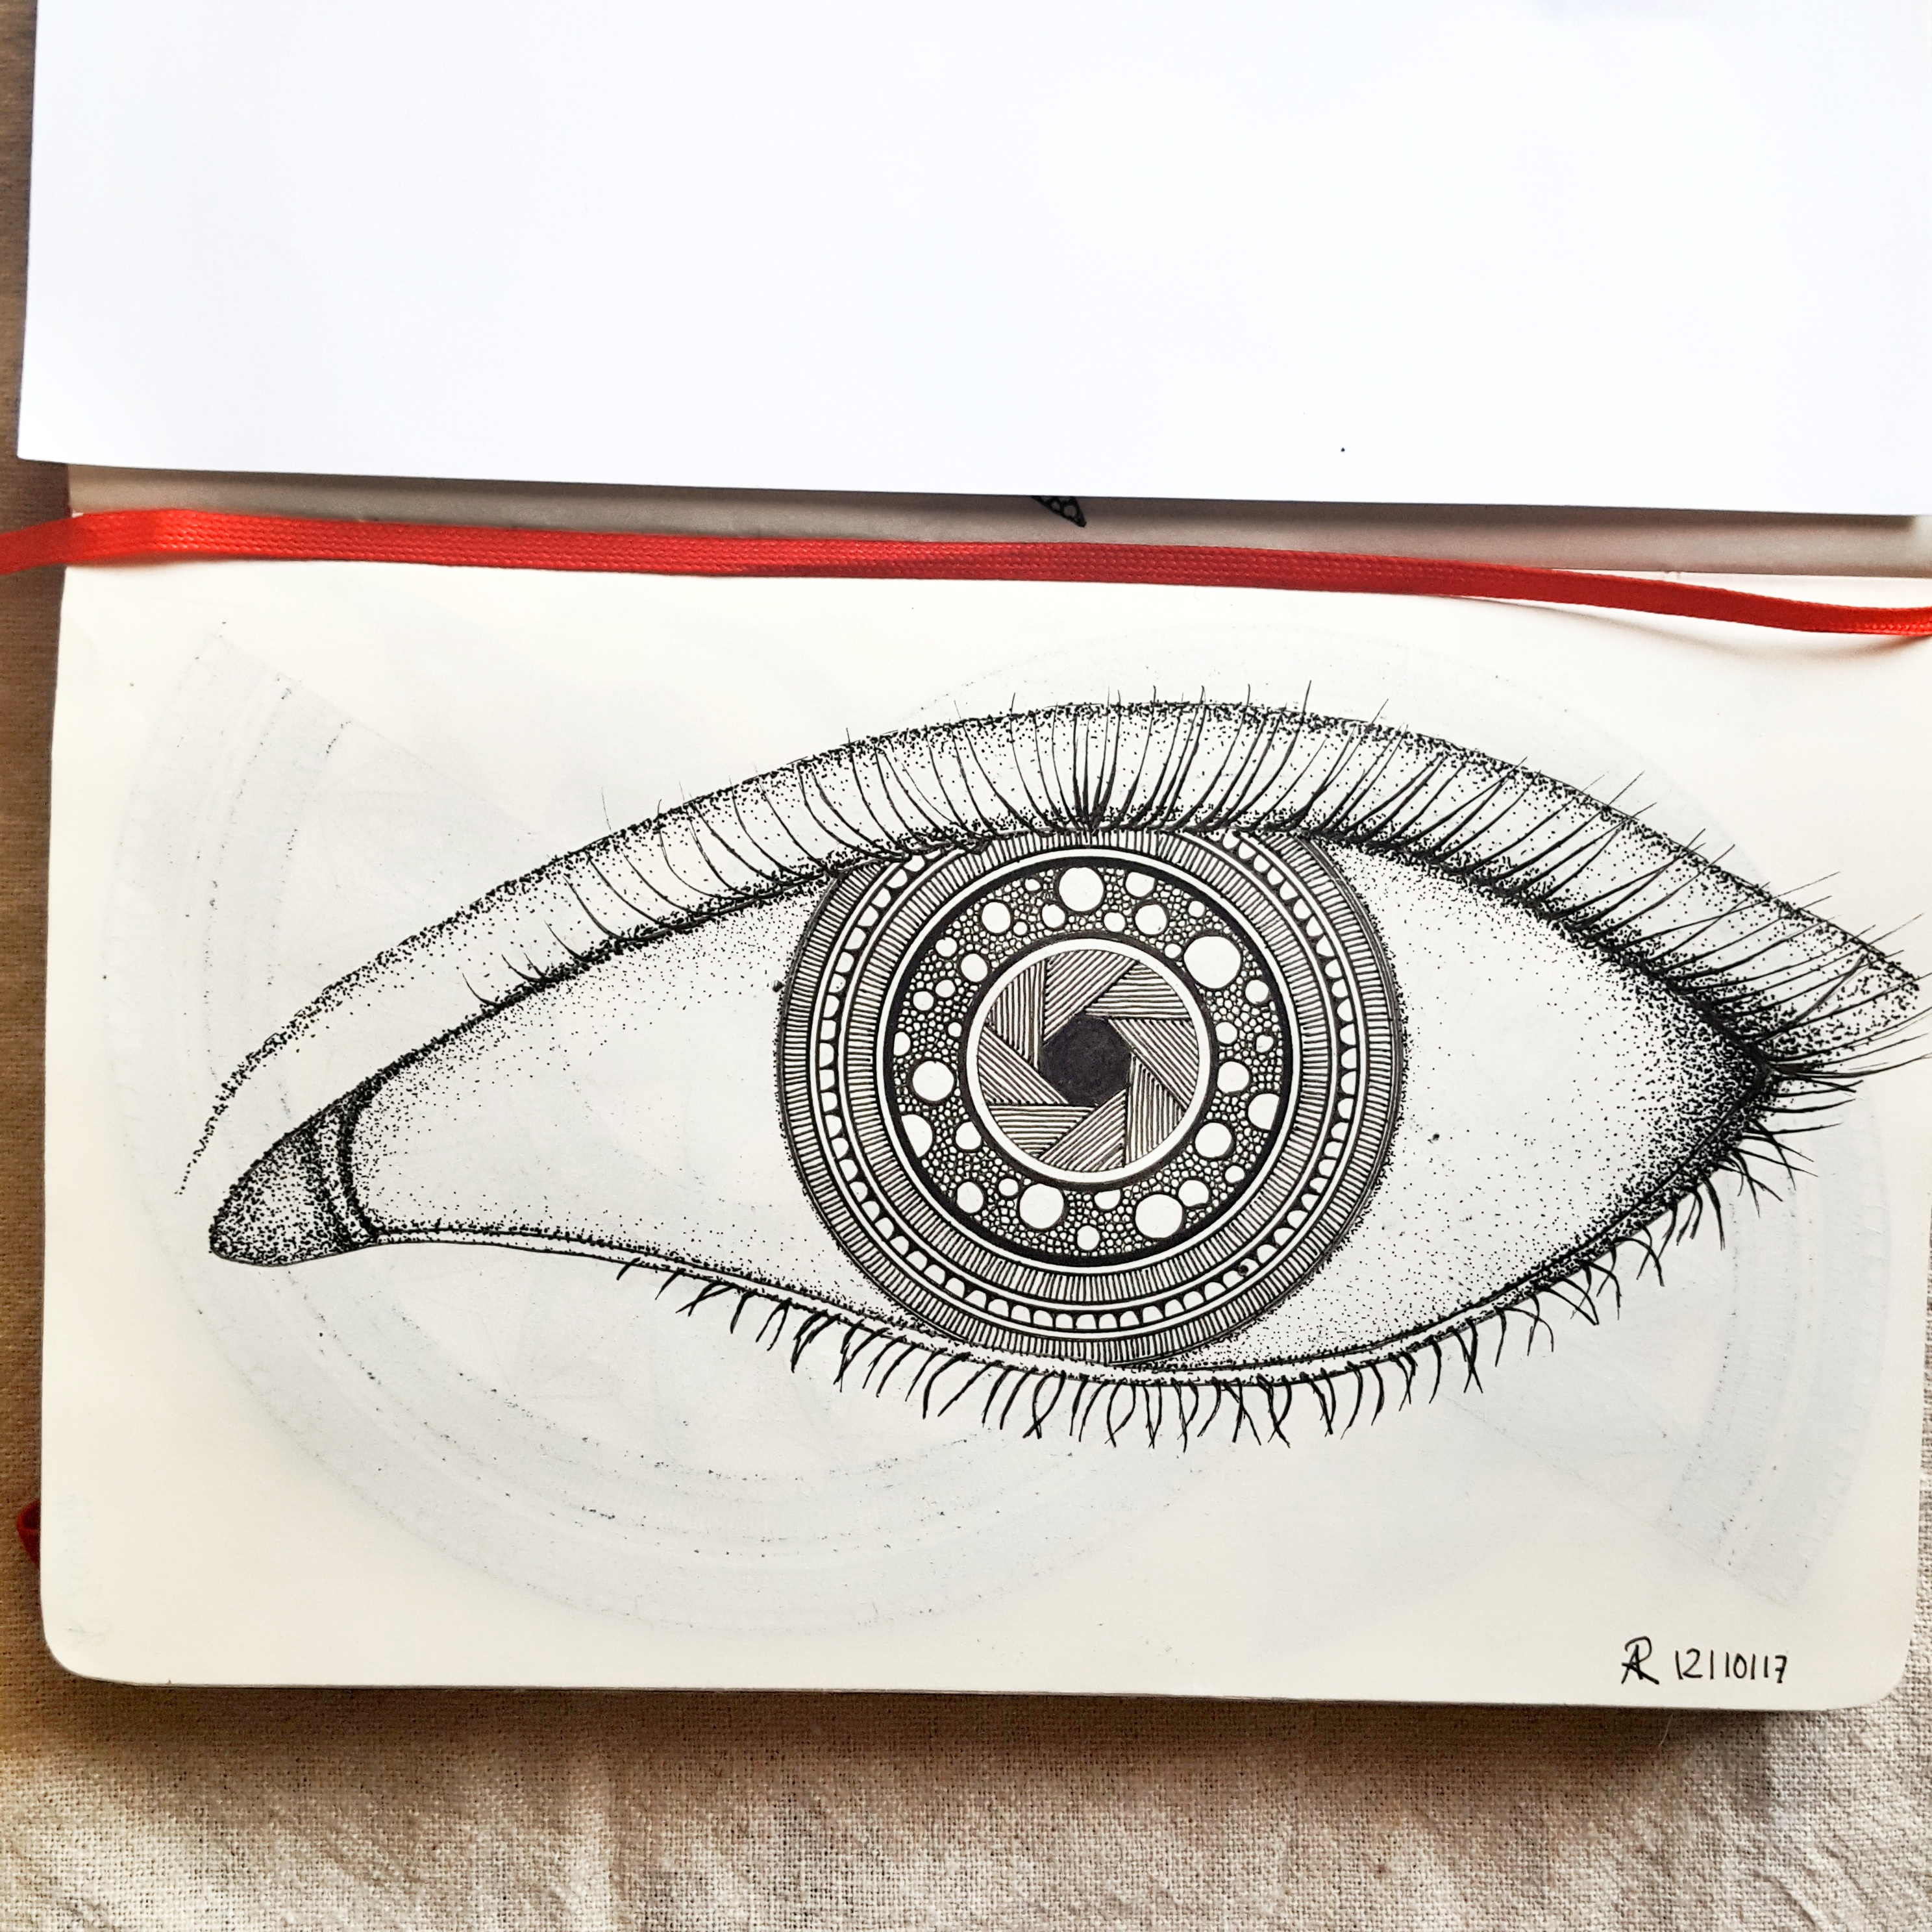 The eye of the photographer